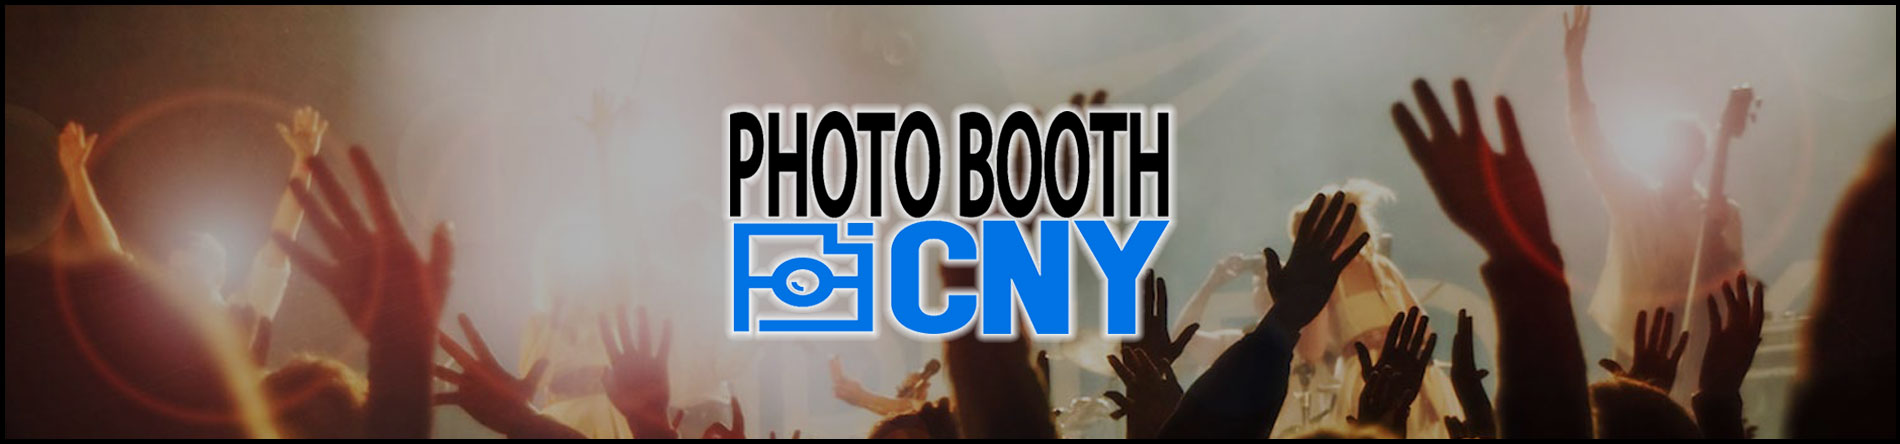 Photo Booth CNY is a Photo Booth Rental Service in Auburn, NY